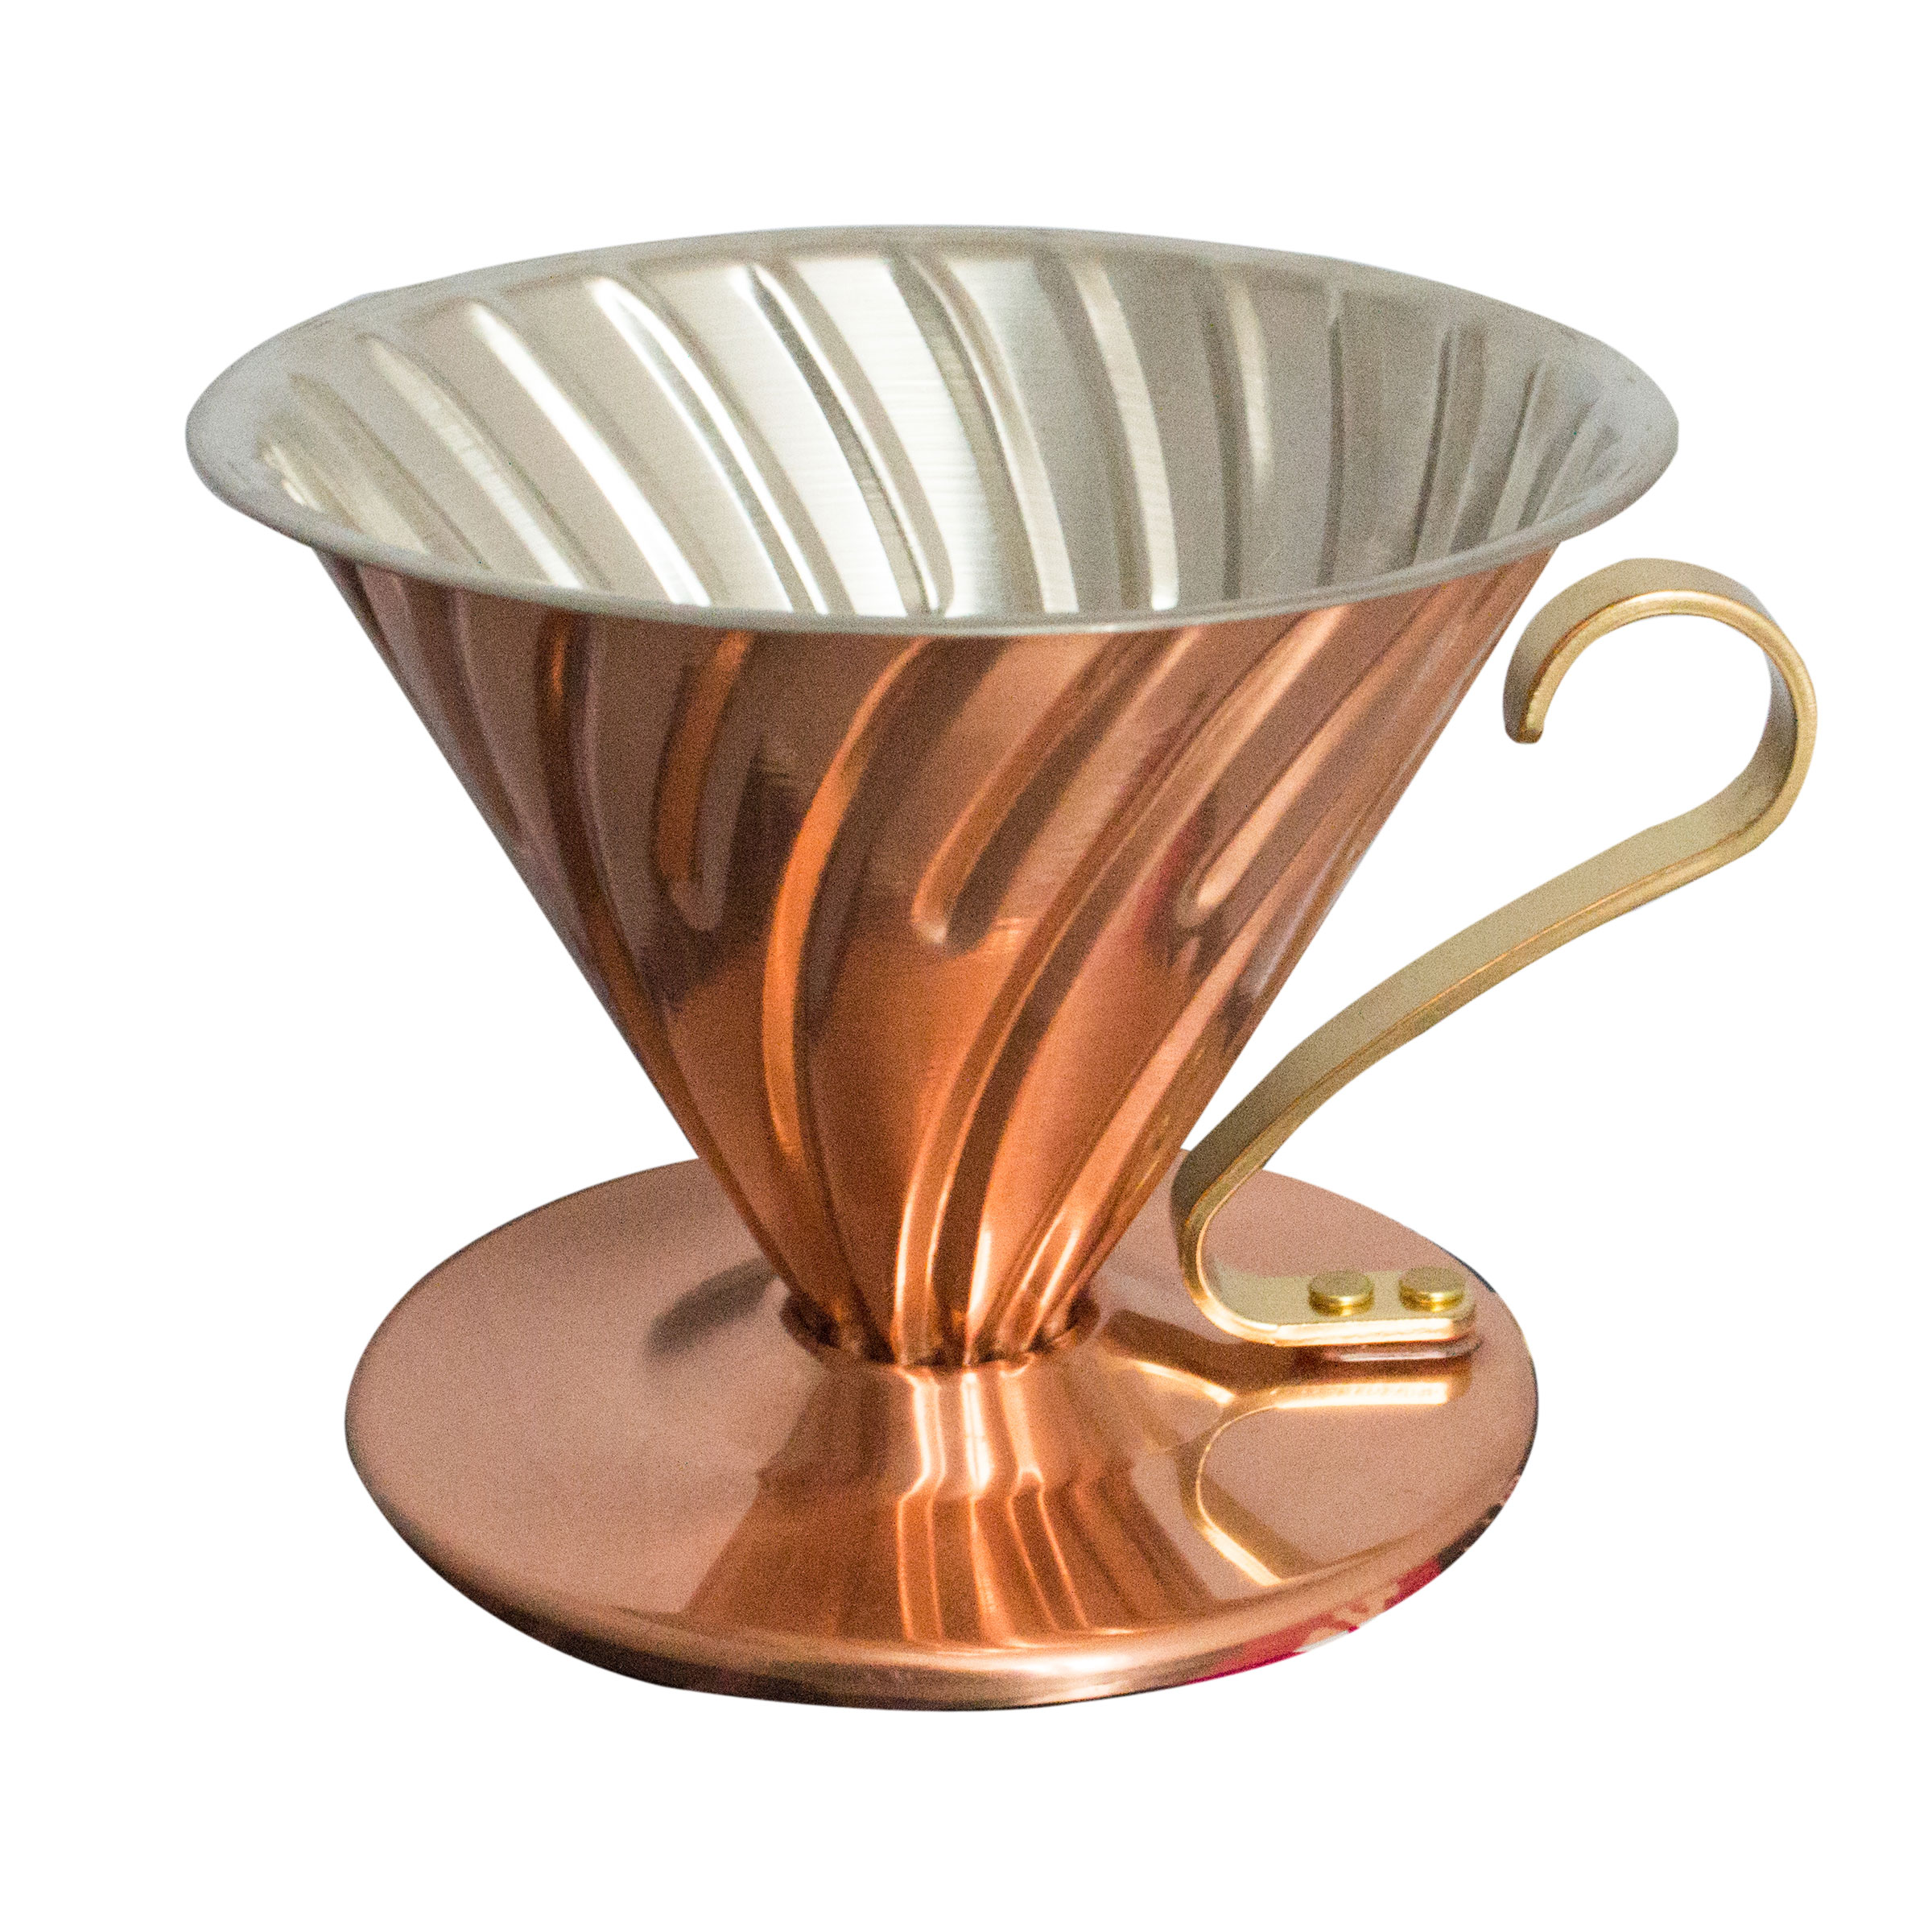 Merchandise - Hario V60 Copper Dripper